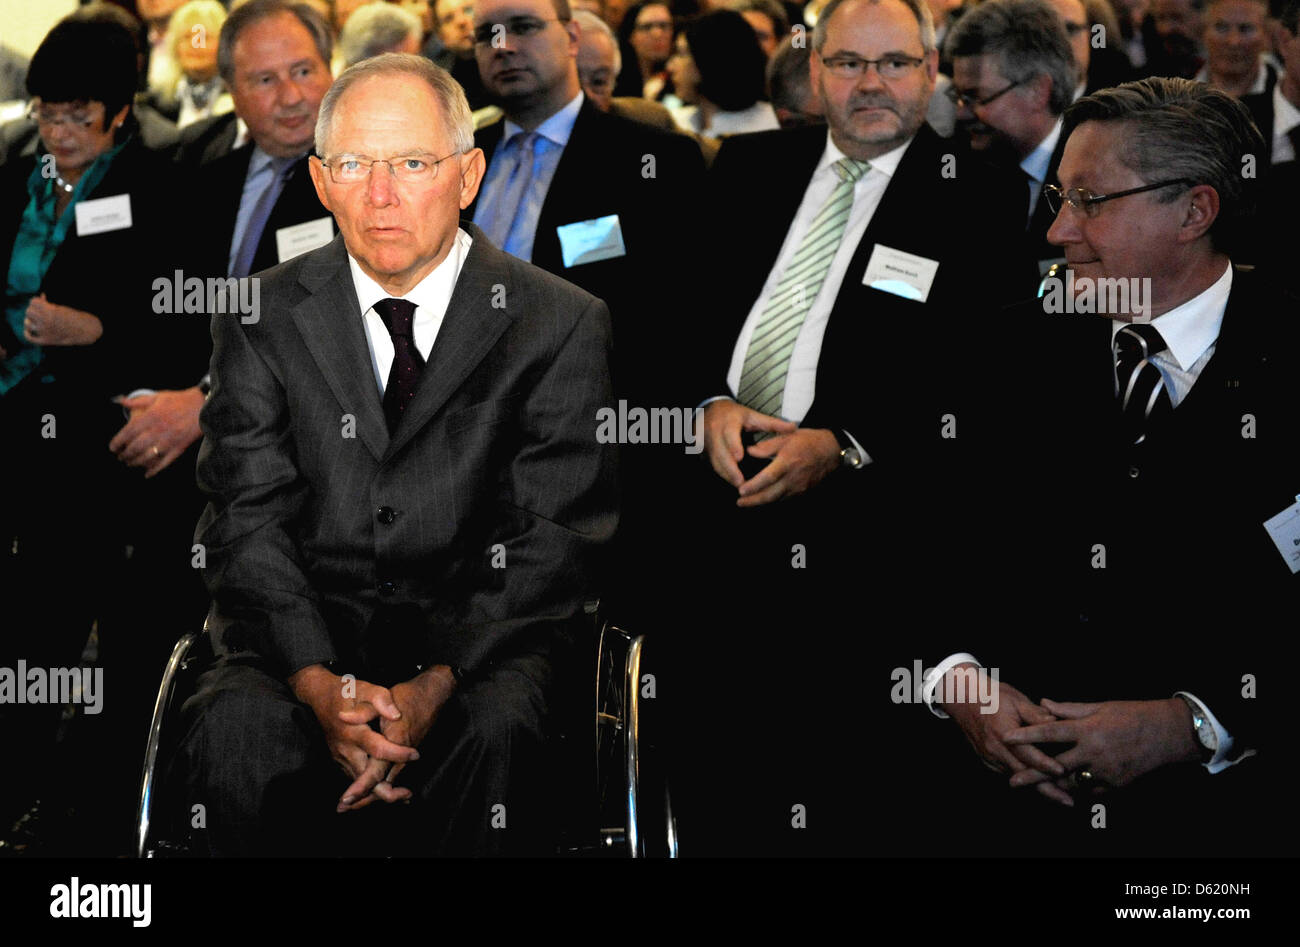 German Minister of Fianance Wolfgang Schaeuble (l) attends the 50th conference of accountants in Berlin, Germany, Stock Photo